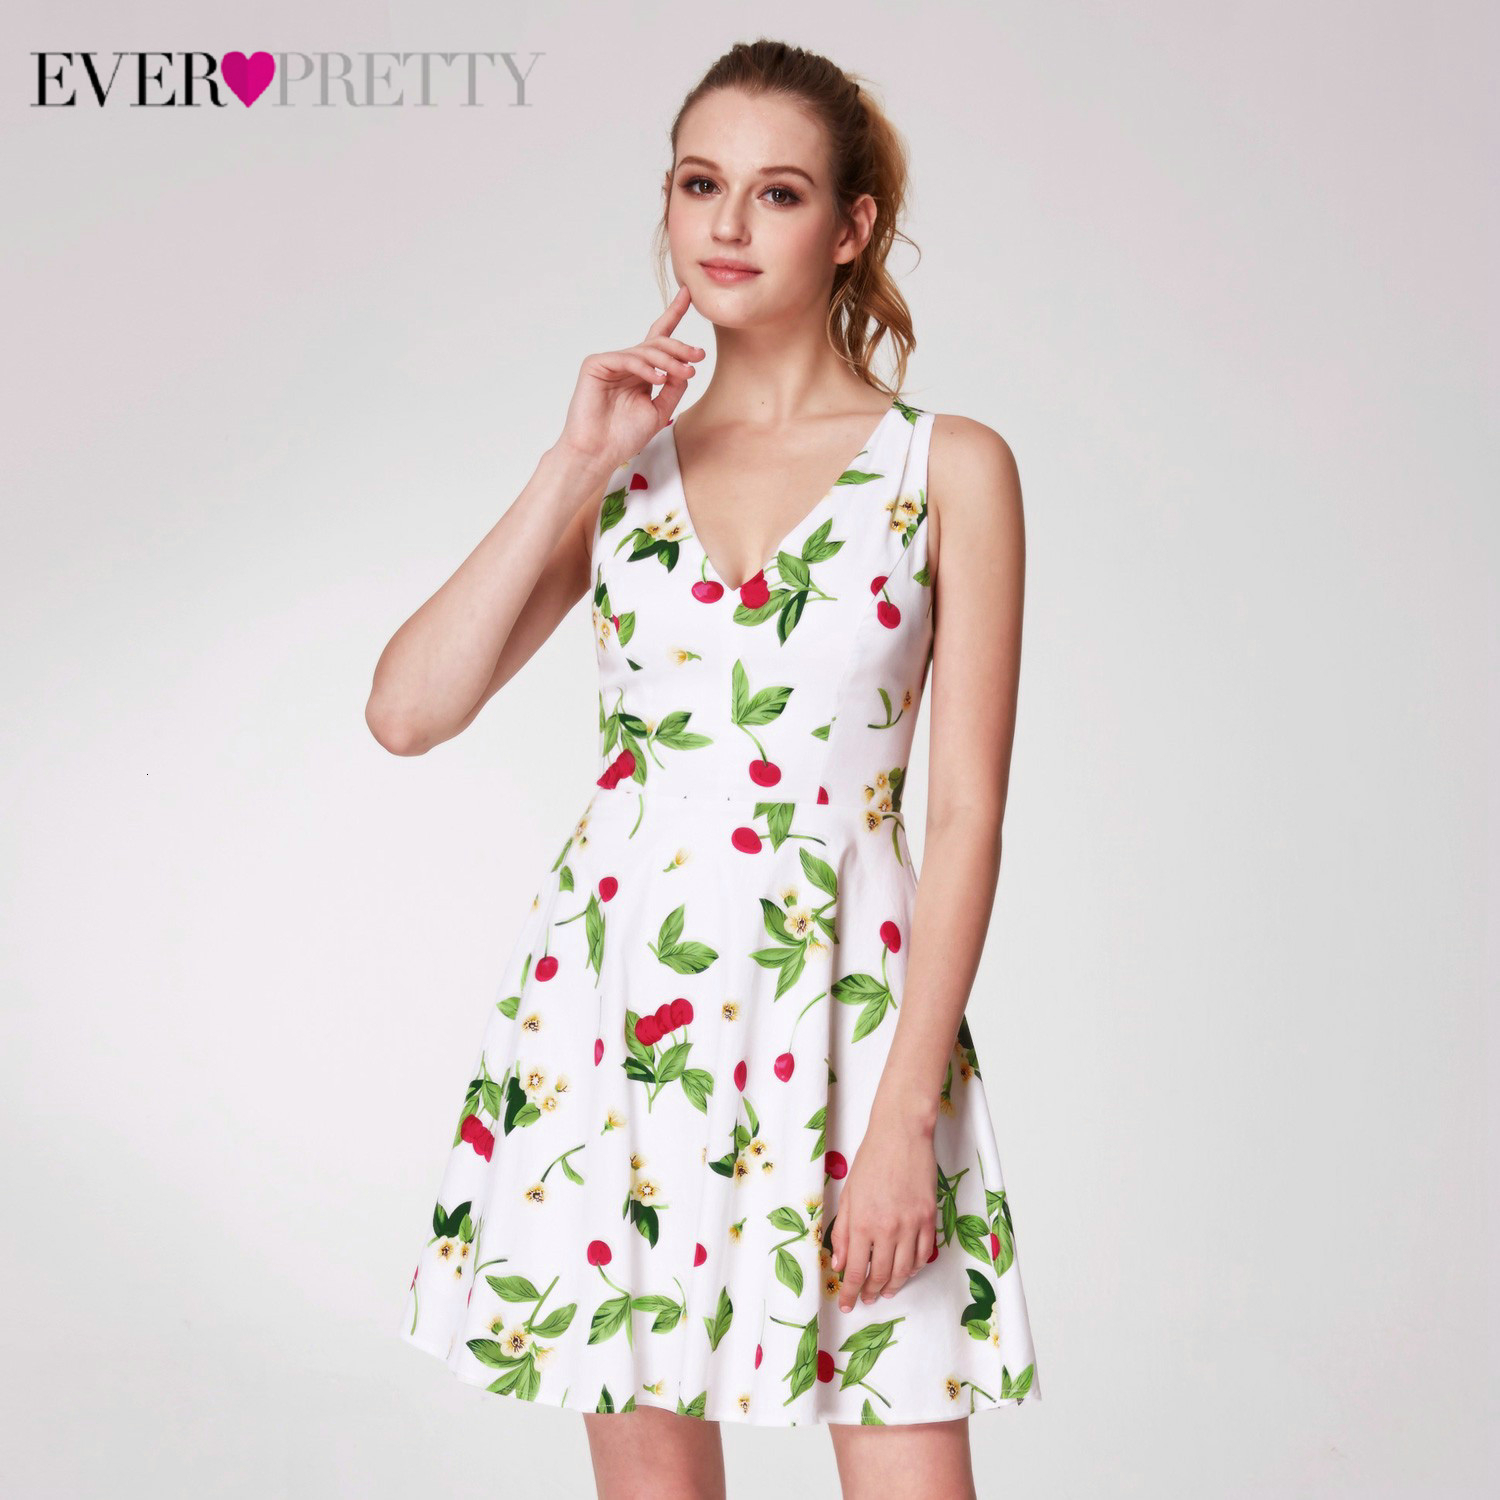 Elegant Floral Printed Homecoming Dresses Ever Pretty AS05970WH A-Line Sleeveless Short Graduation Dresses Vestidos Cortos 2020